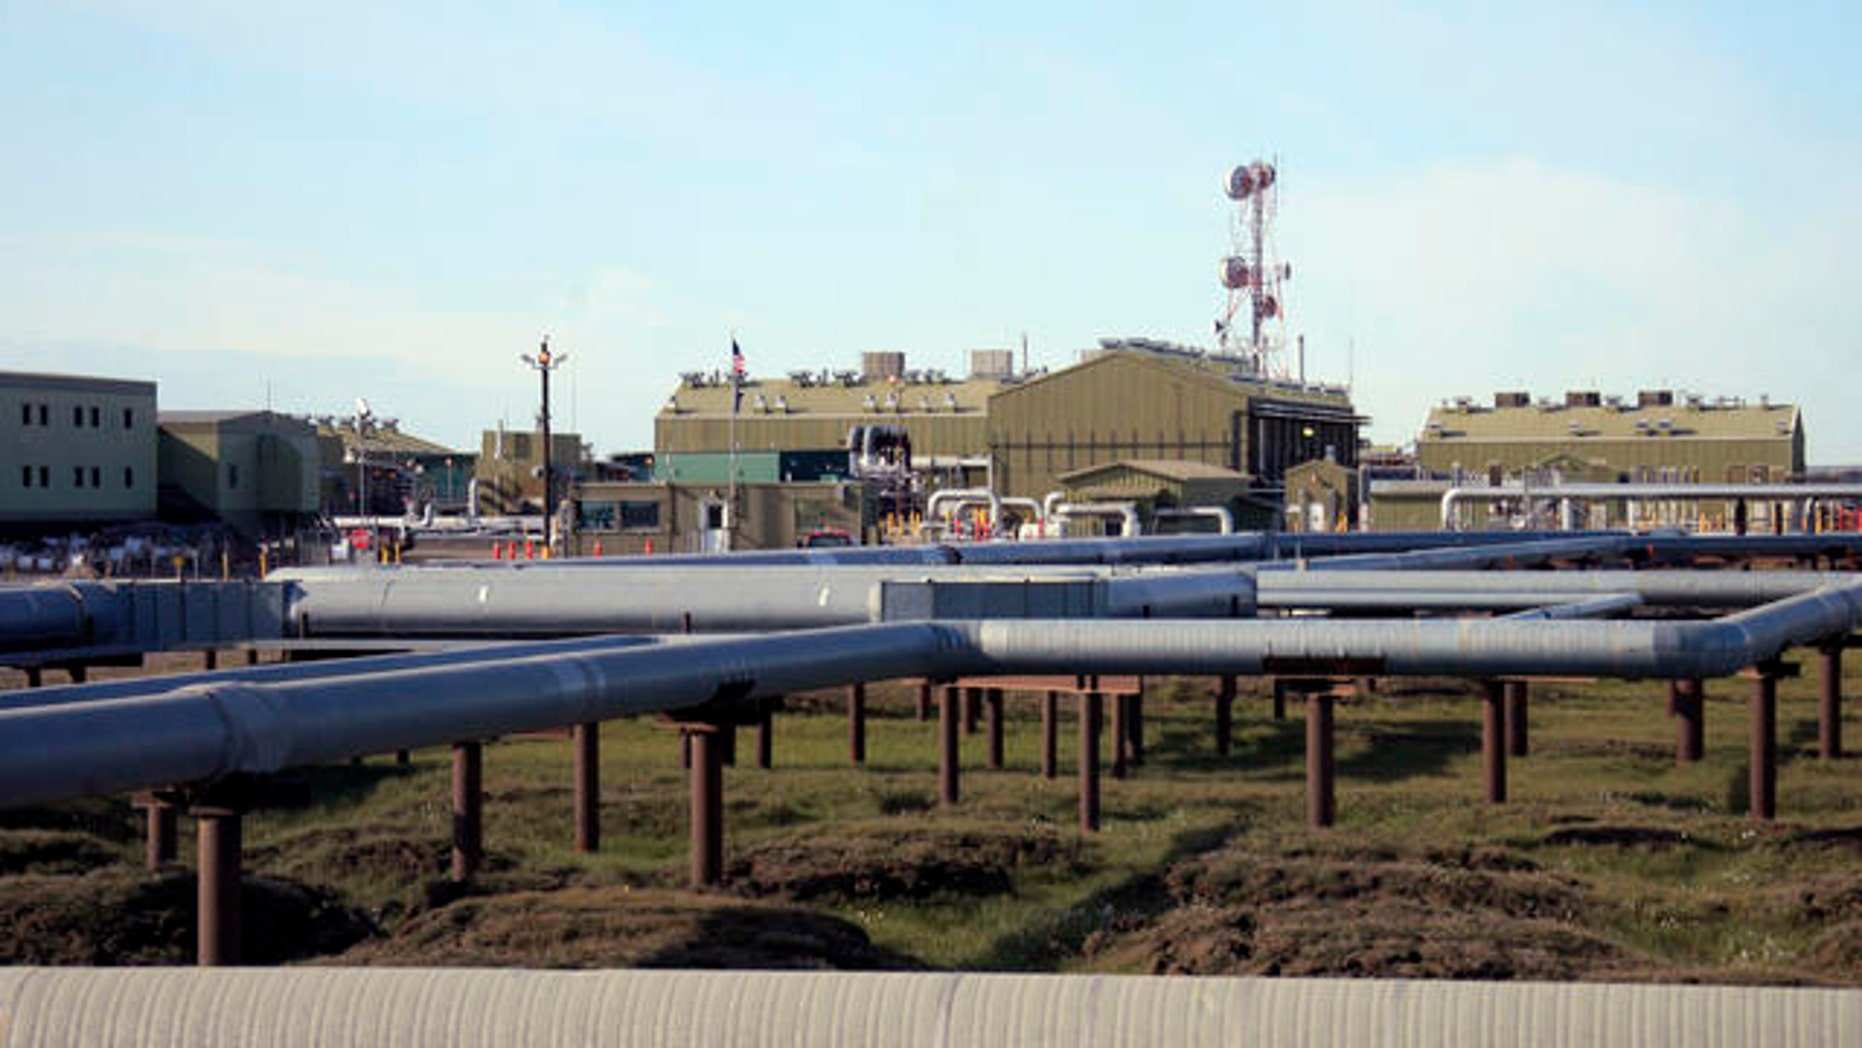 Shown here are oil and gas pipelines running into Alyeska's trans-Alaska oil pipeline pump station in Deadhorse, Alaska.